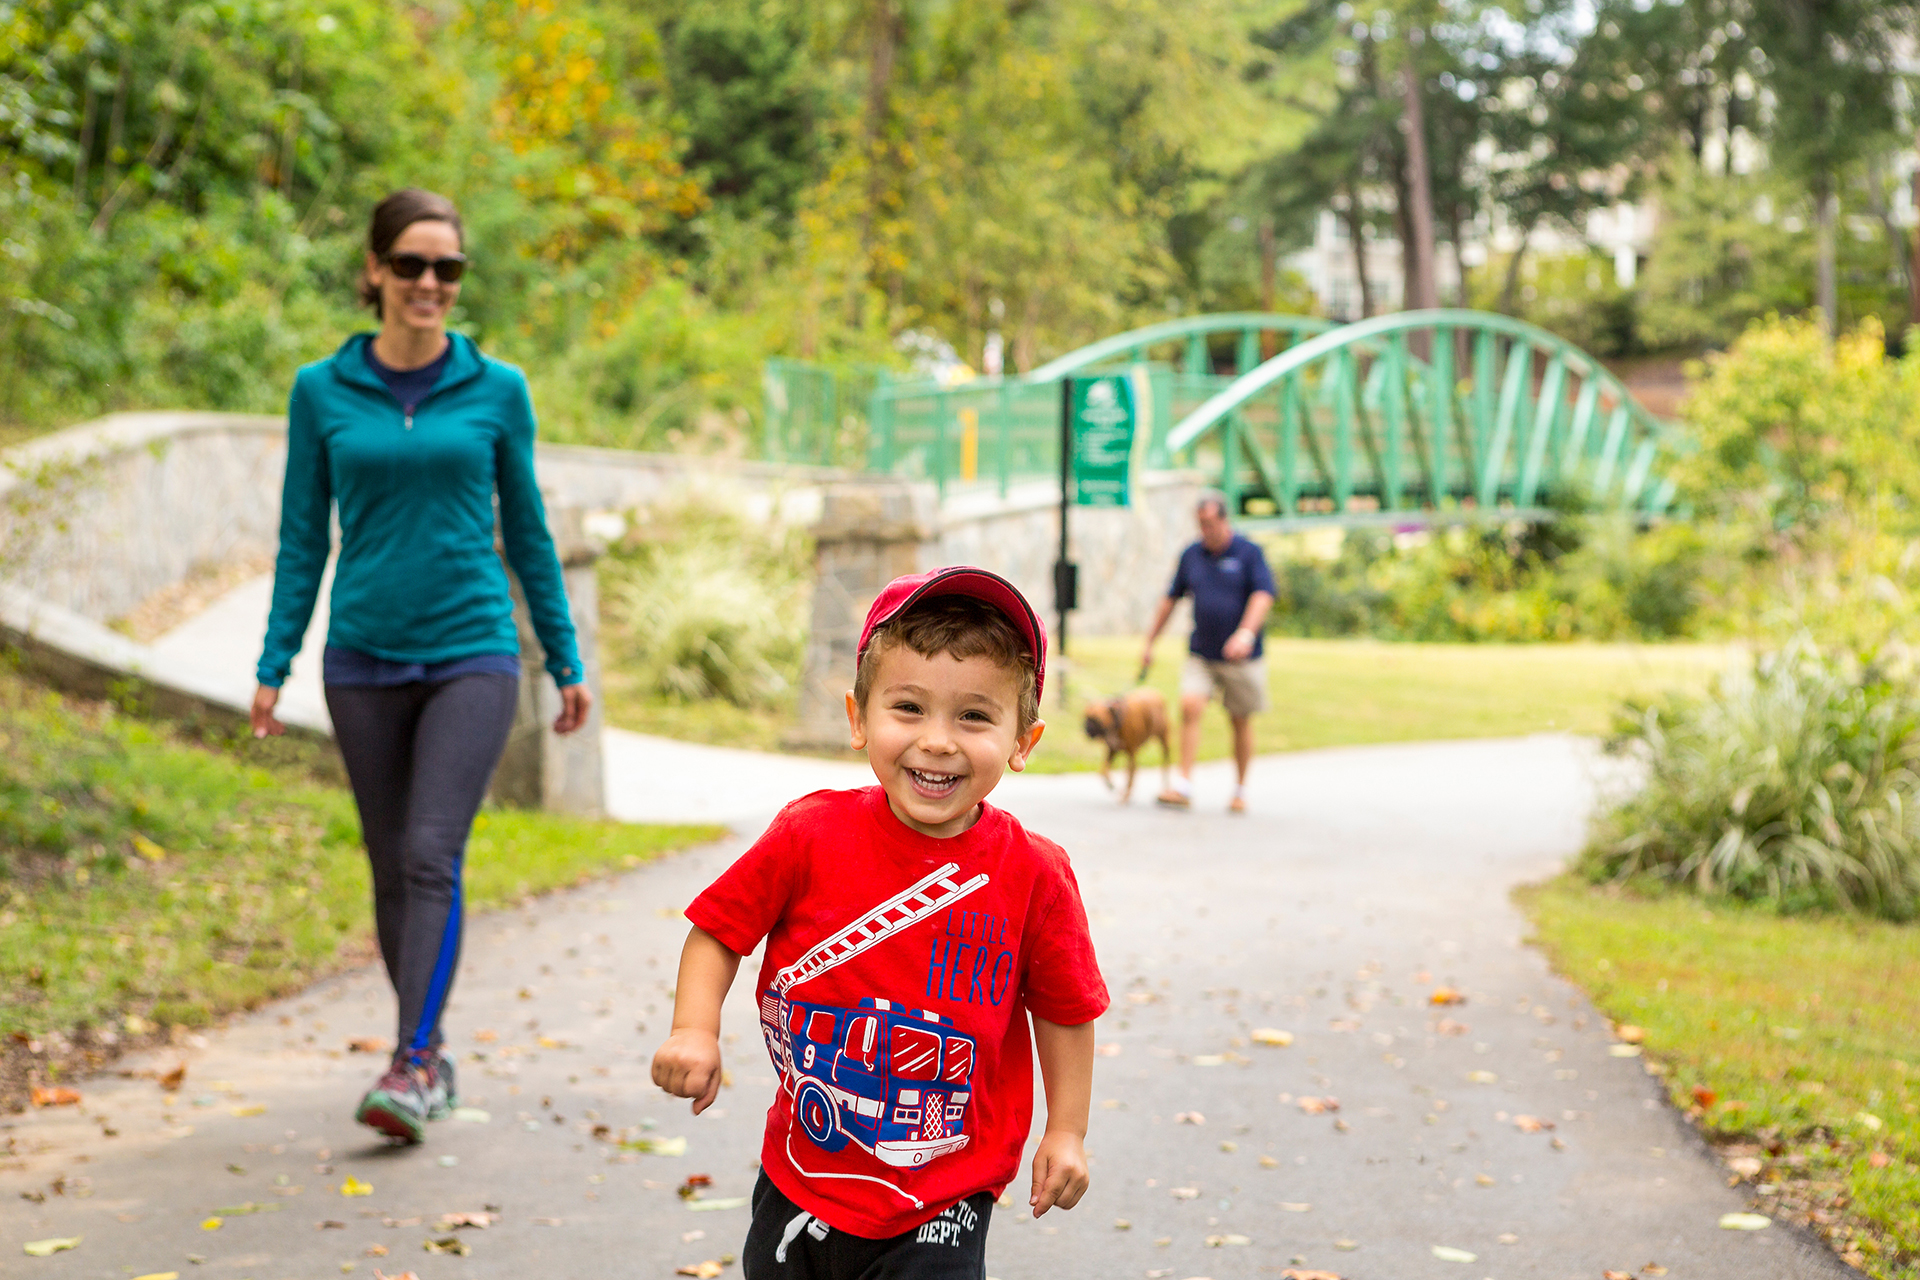 GHS Swamp Rabbit Trail in Greenville, South Carolina; Courtesy of Visit Greenville SC